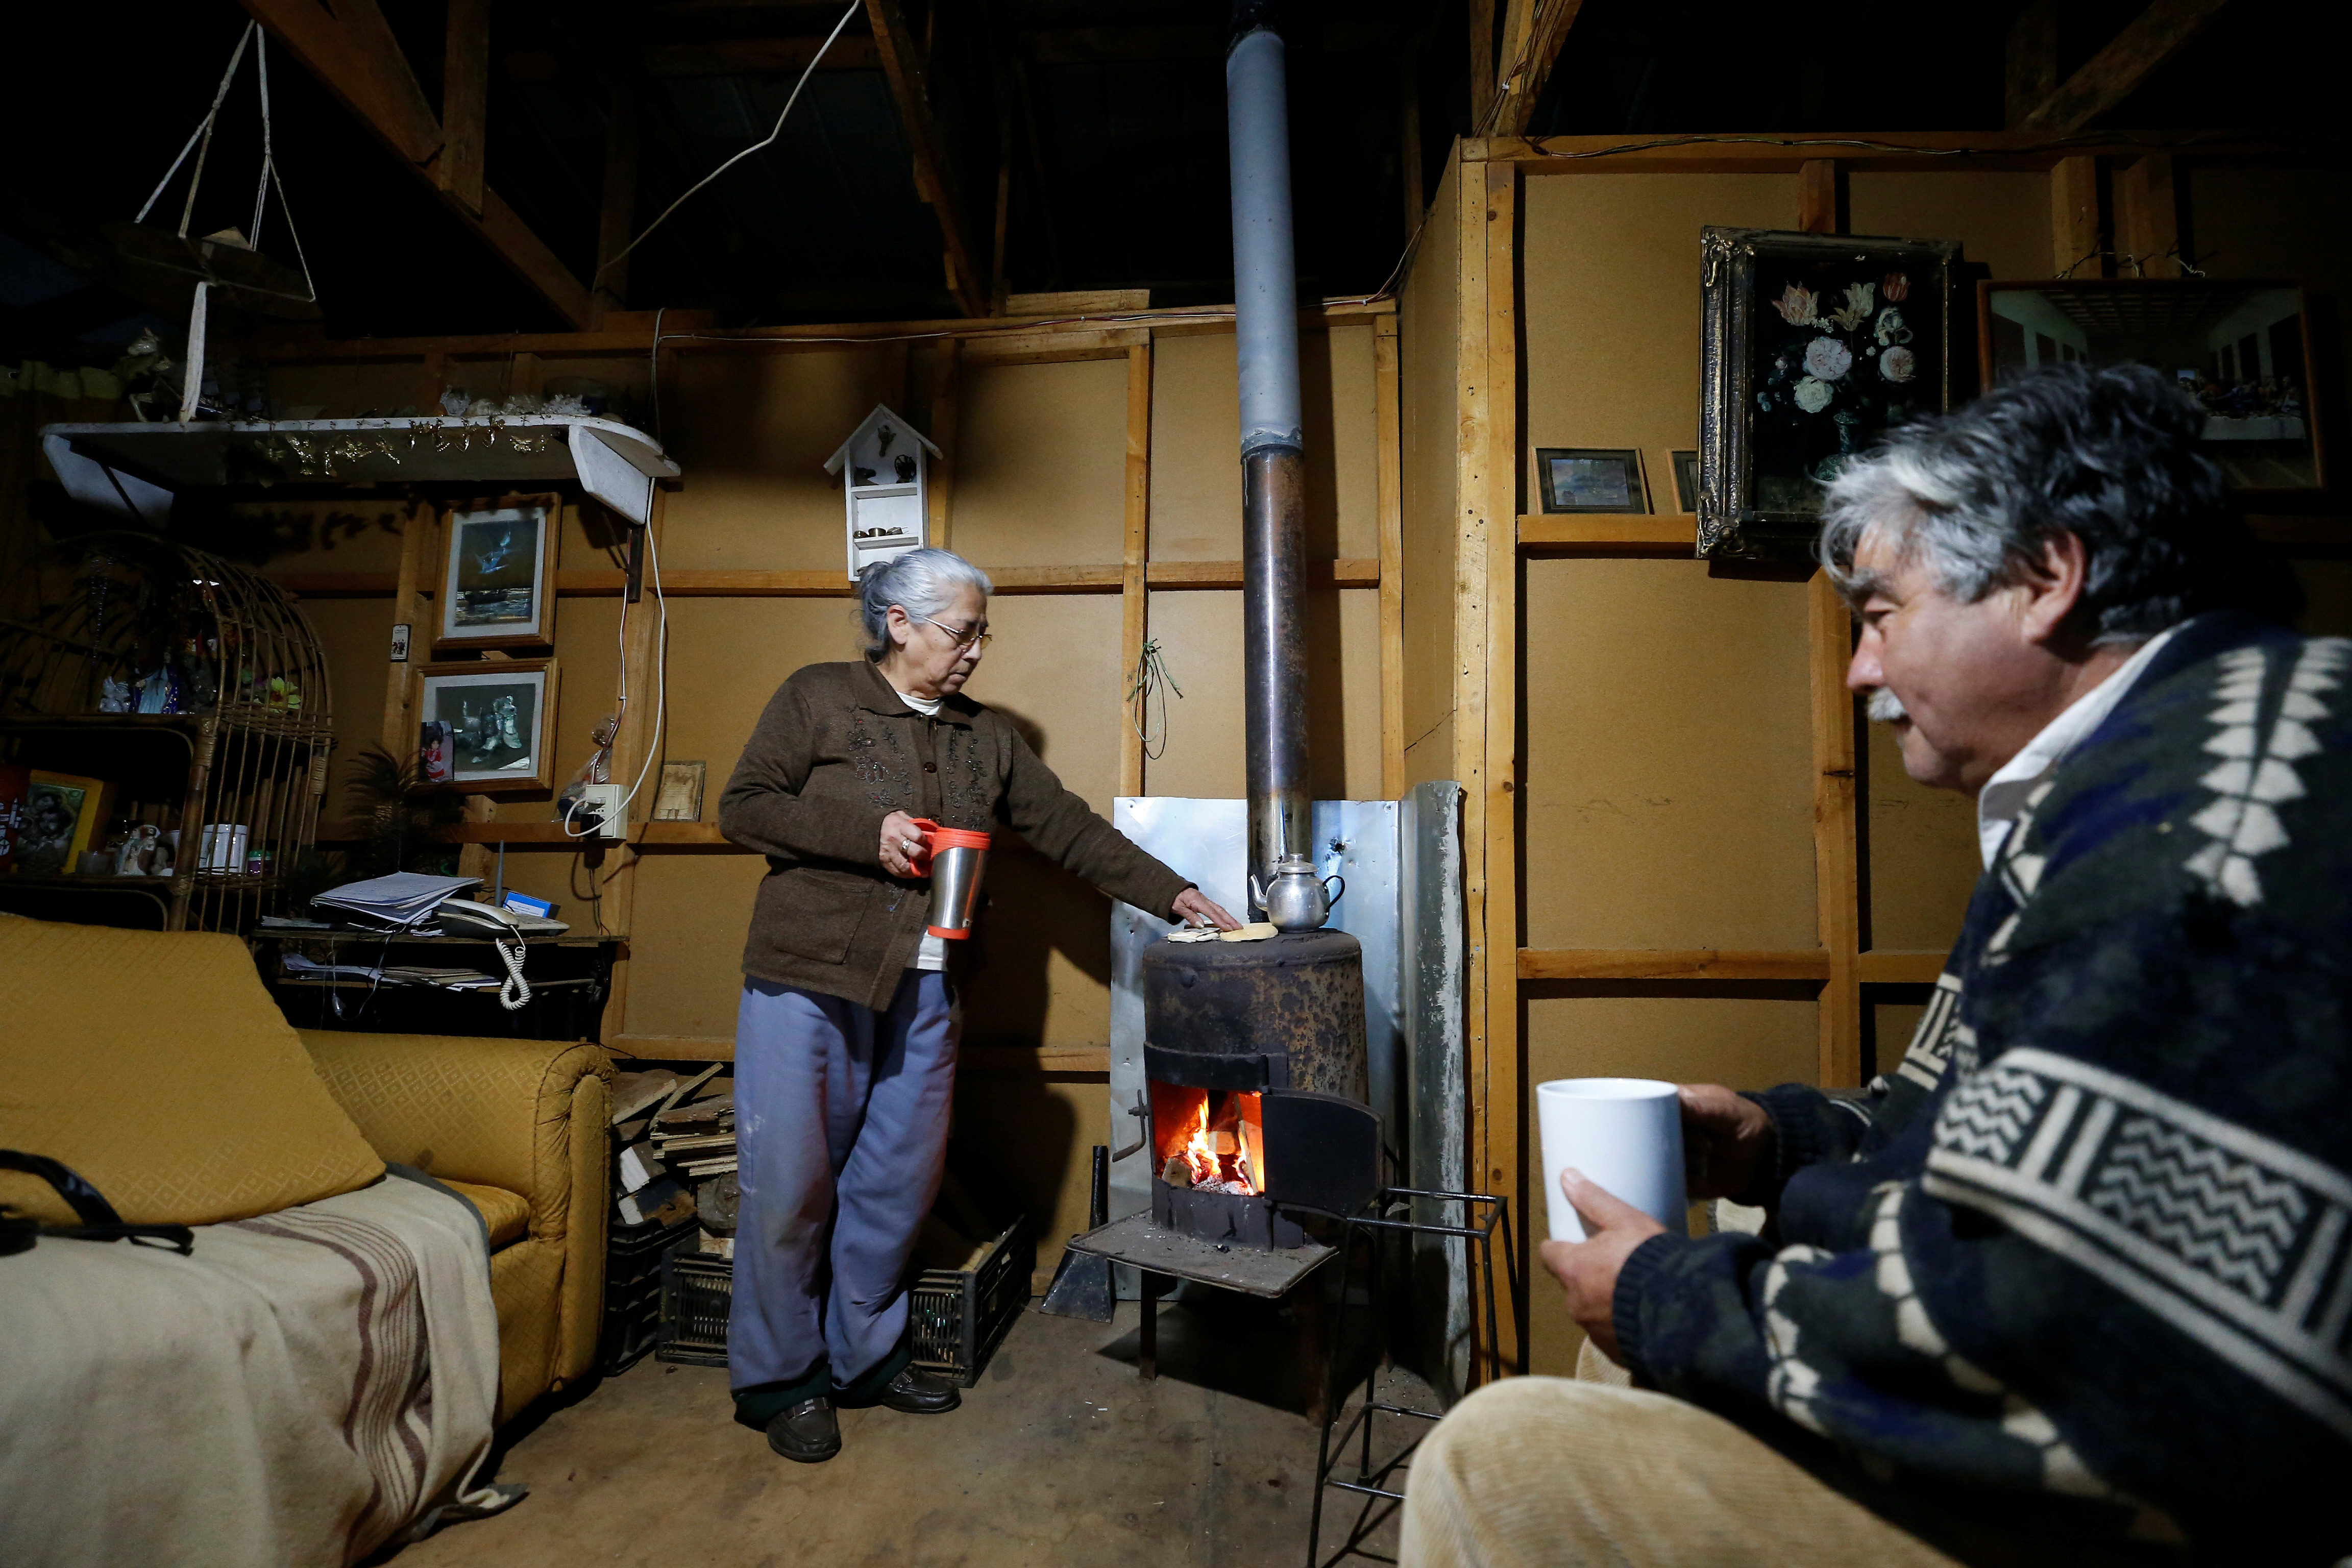 An elderly couple are seen by a wood burning stove in their home.